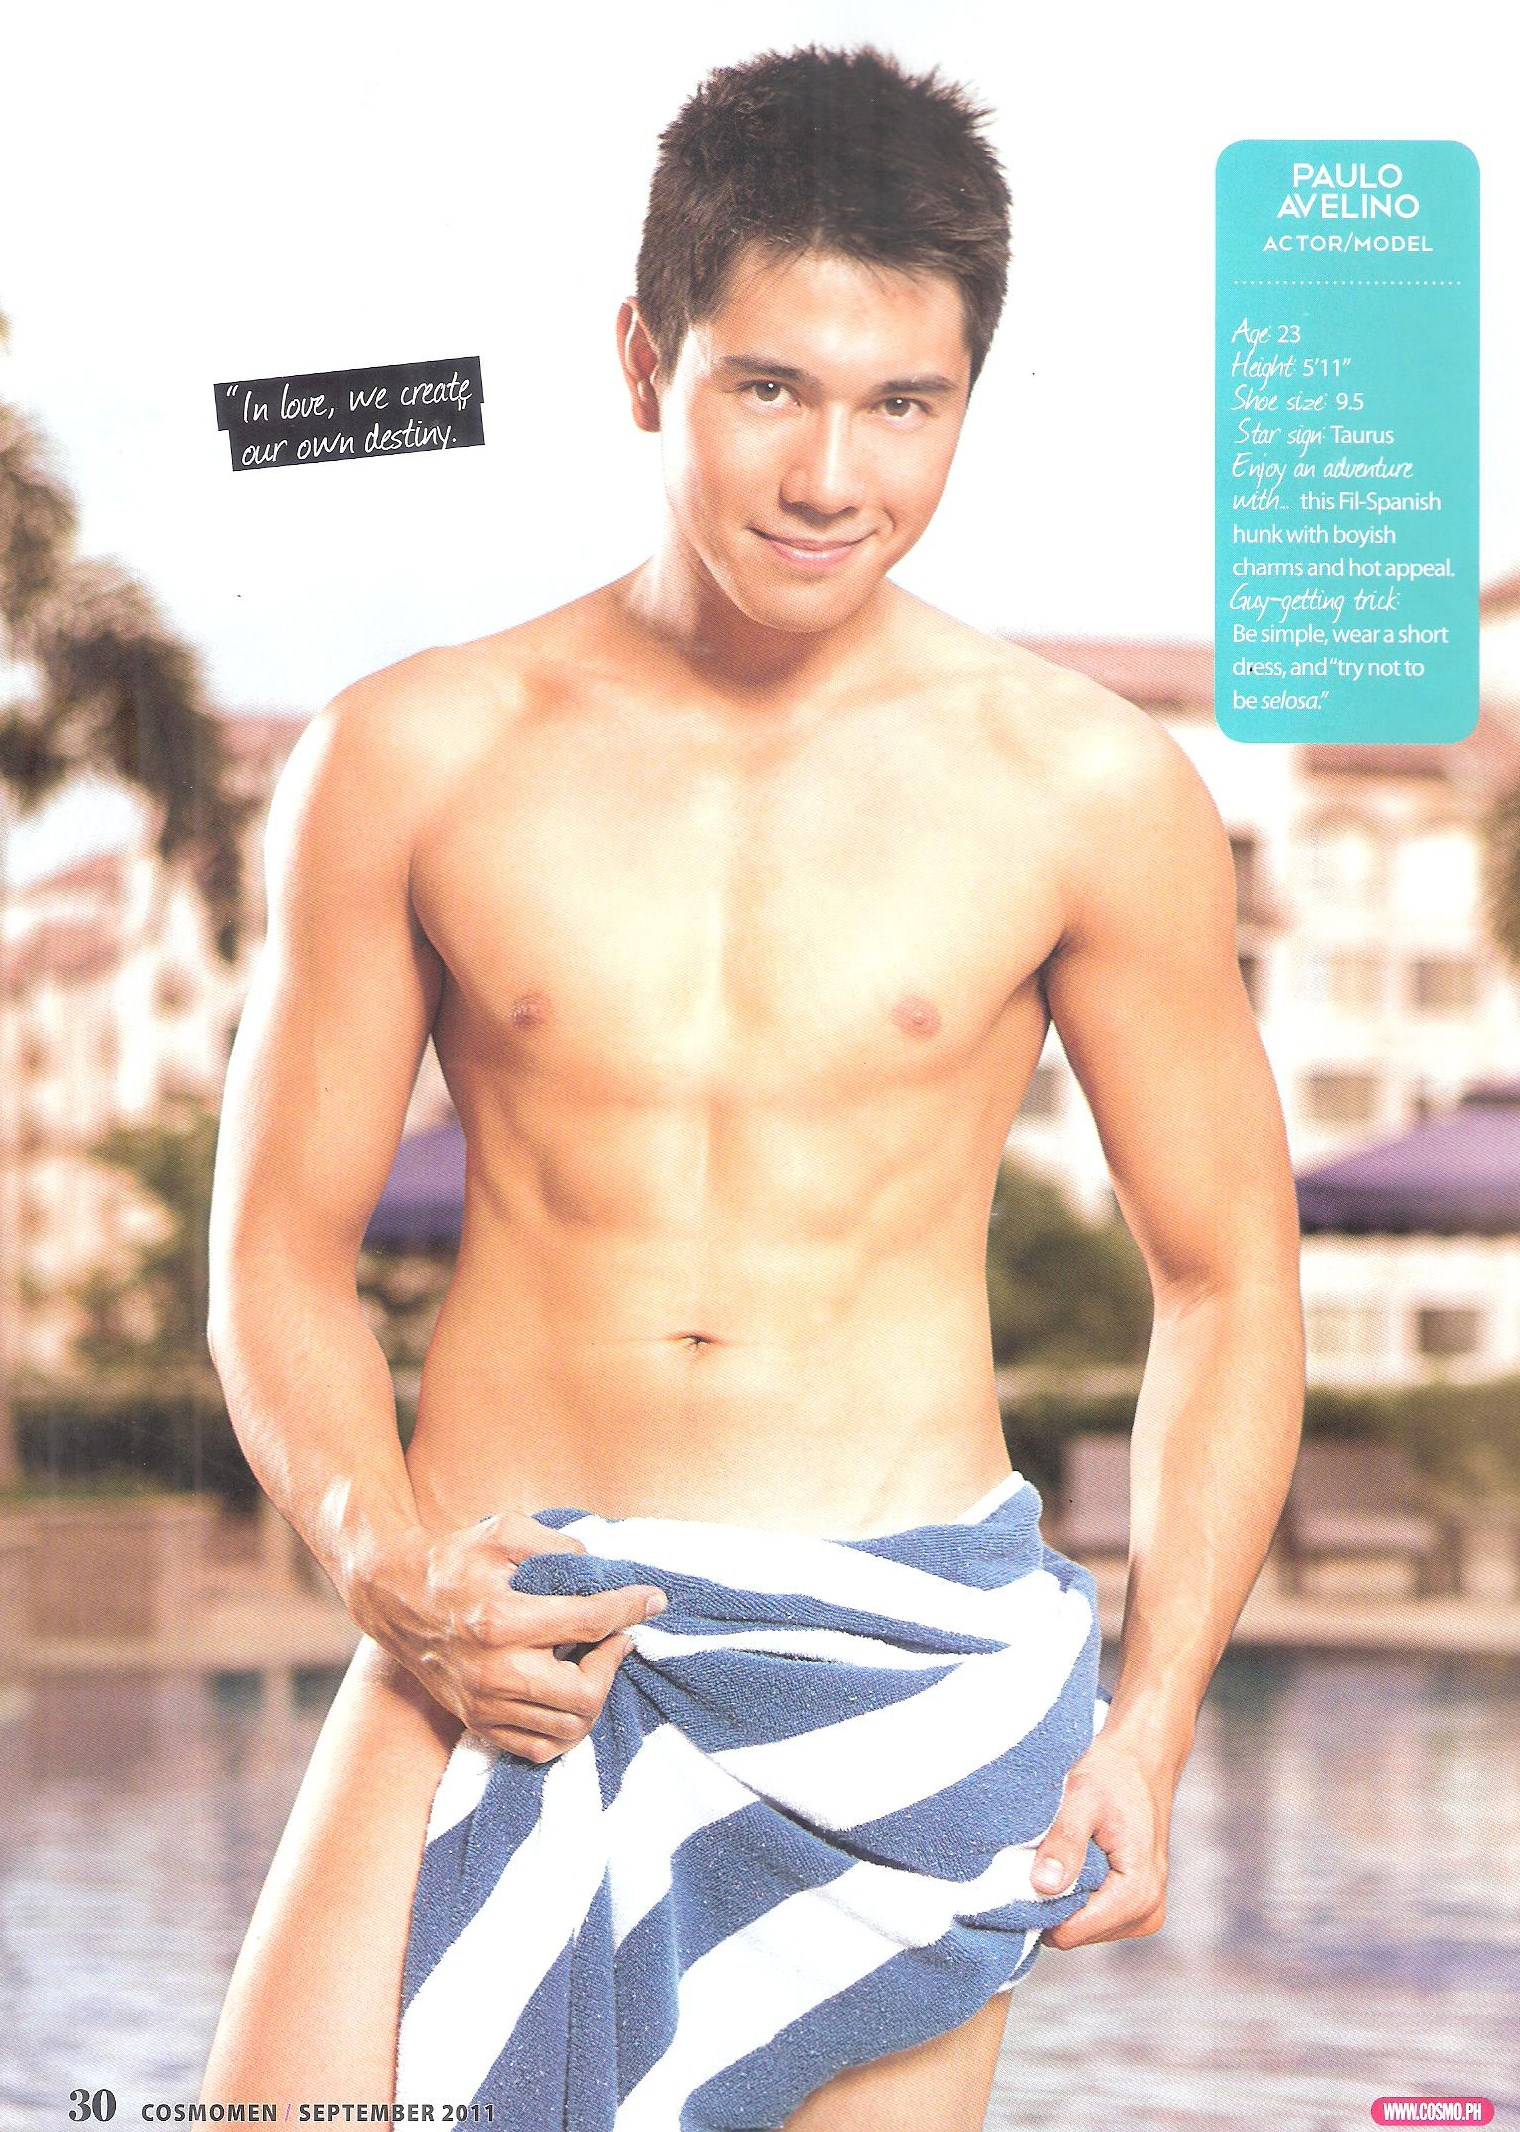 Paulo_Avelino_Hot http://aliwanavenue.com/2011/09/14/paulo-avelino-burns-cosmomen-pages/